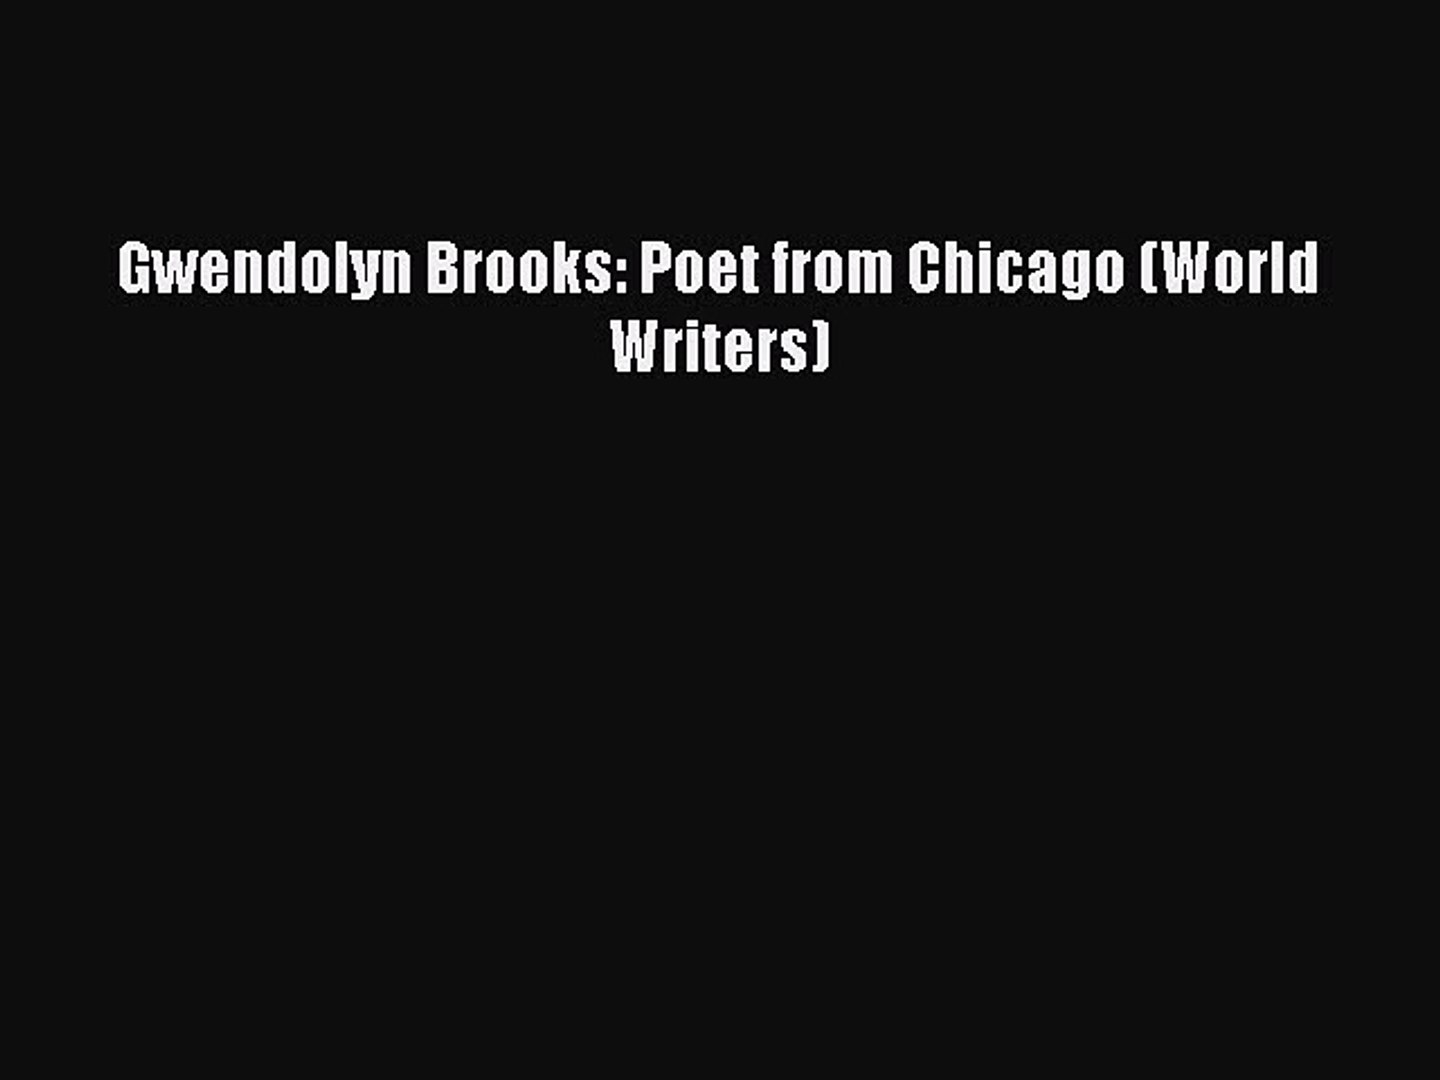 The Essential Gwendolyn Brooks has been added